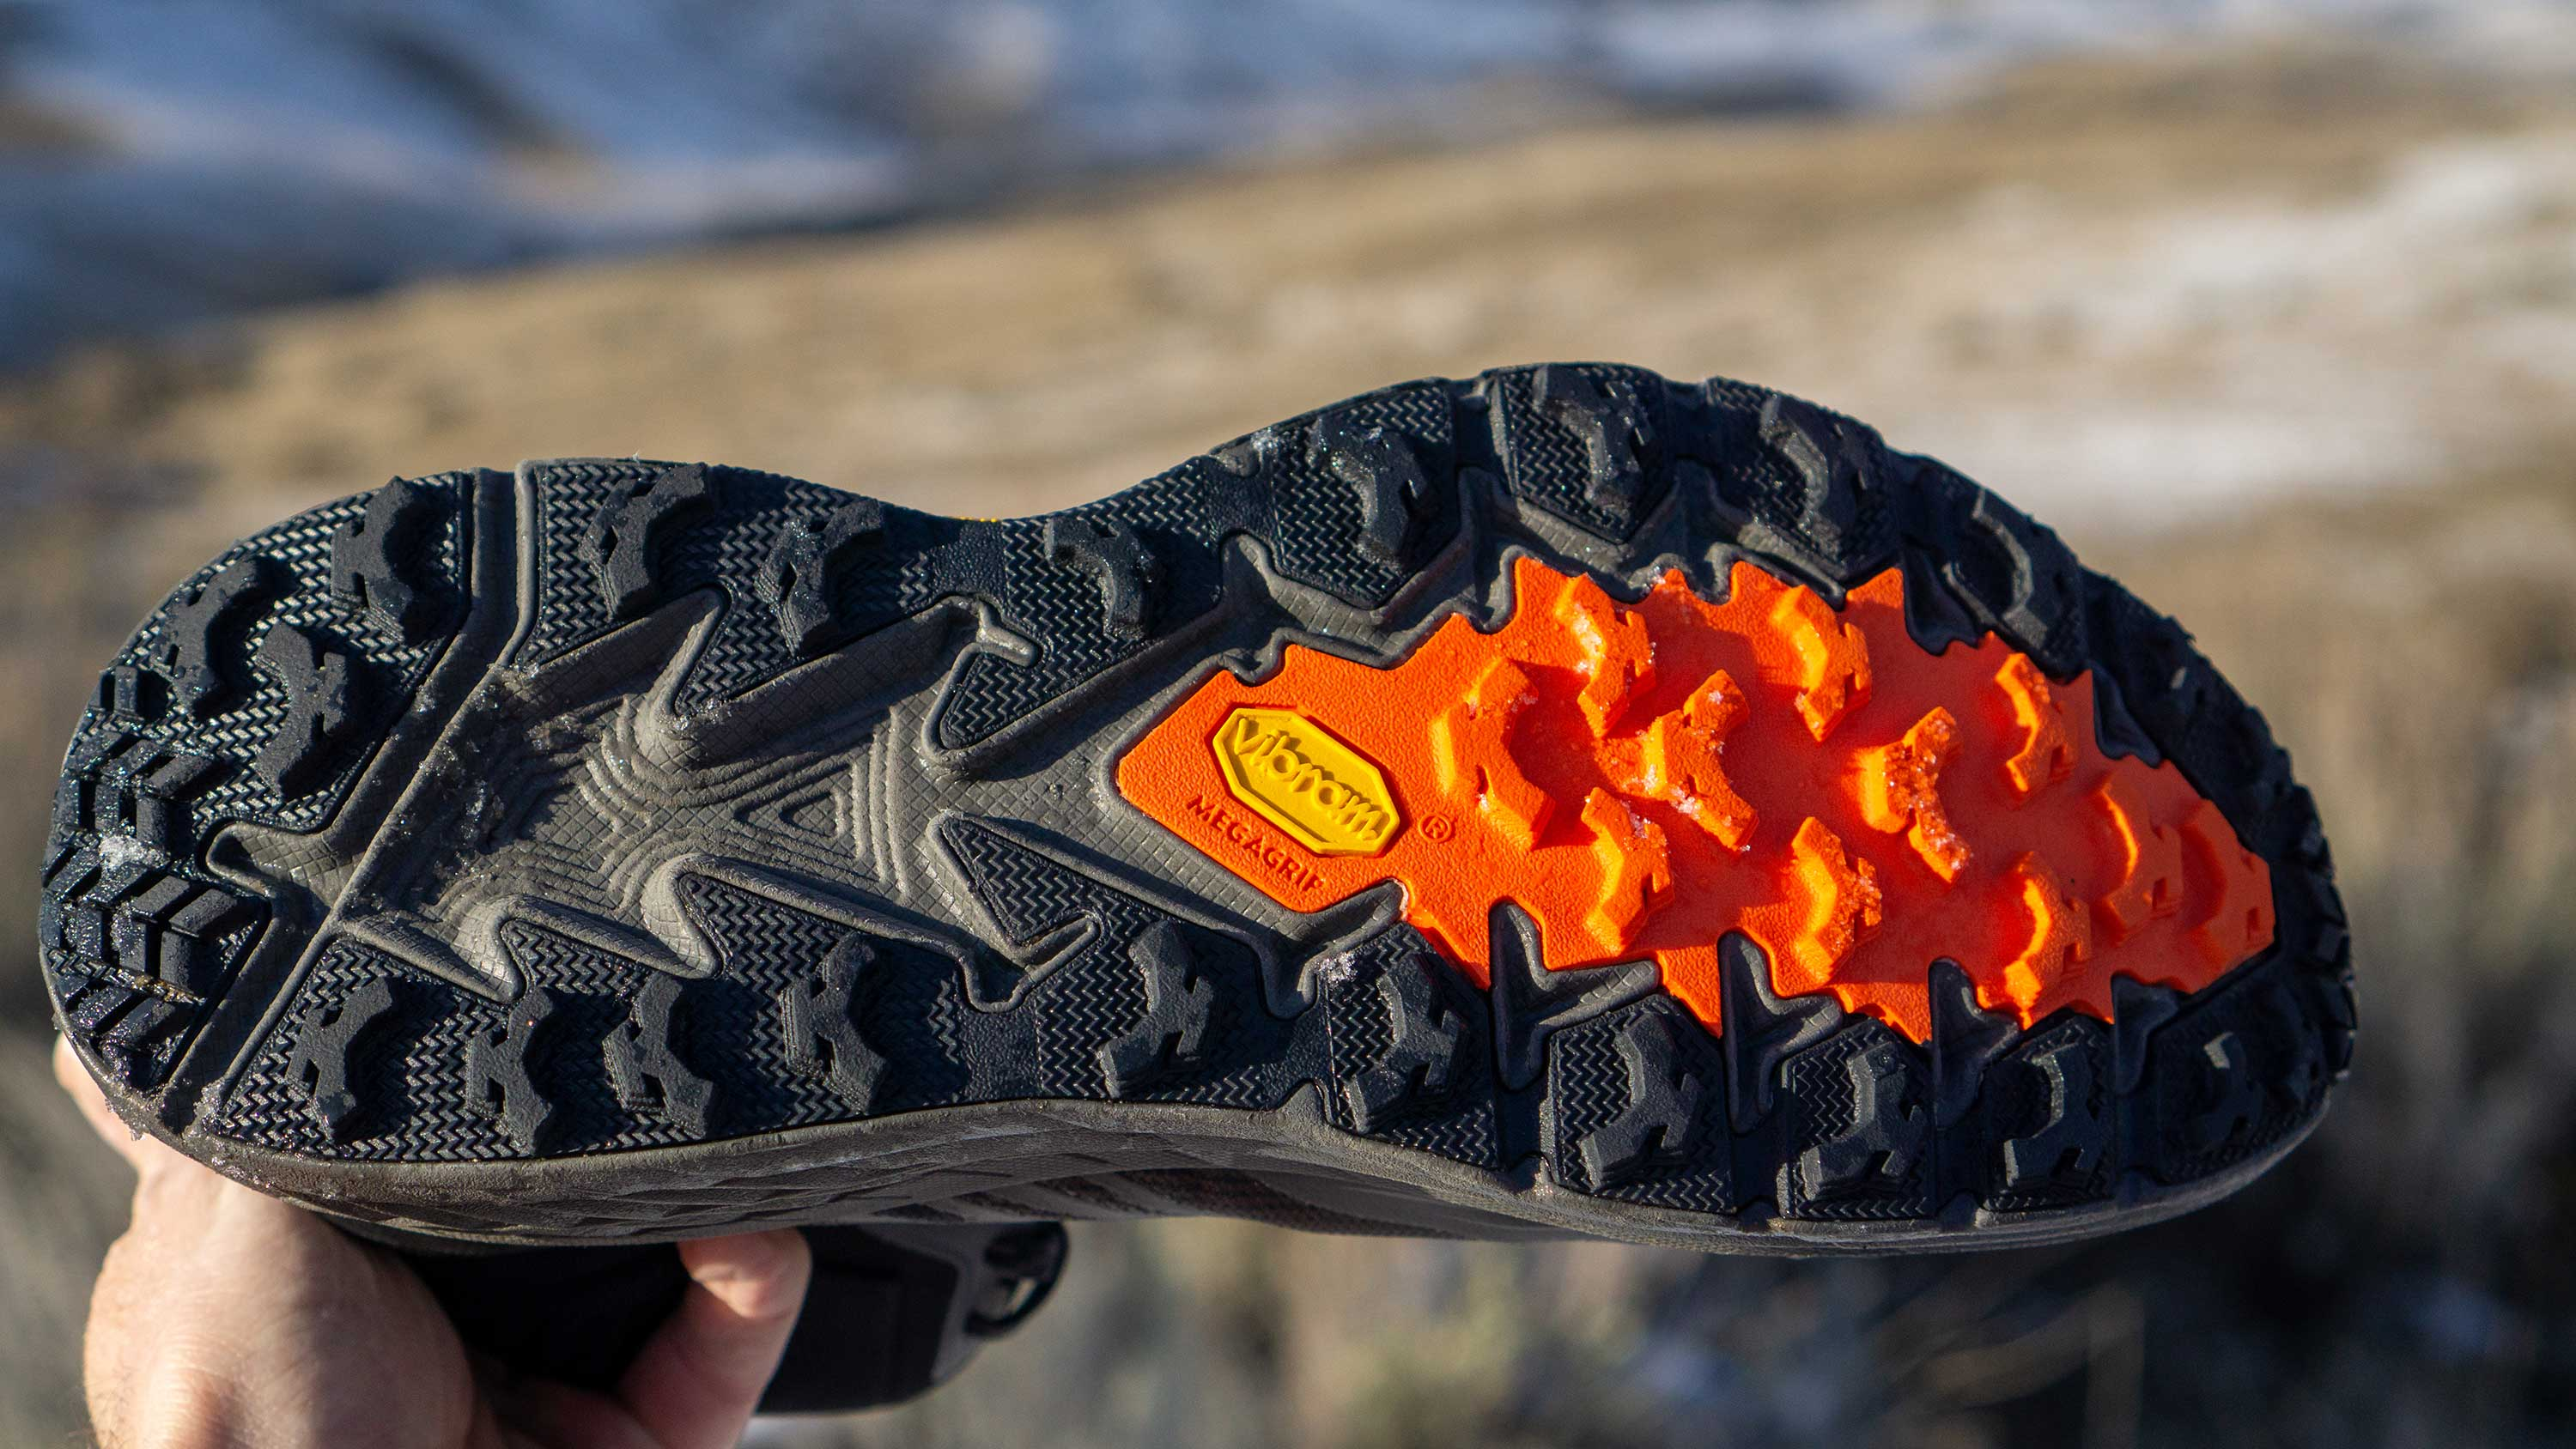 Traction on the Hoka One One Speedgoat Mid 2 GTX